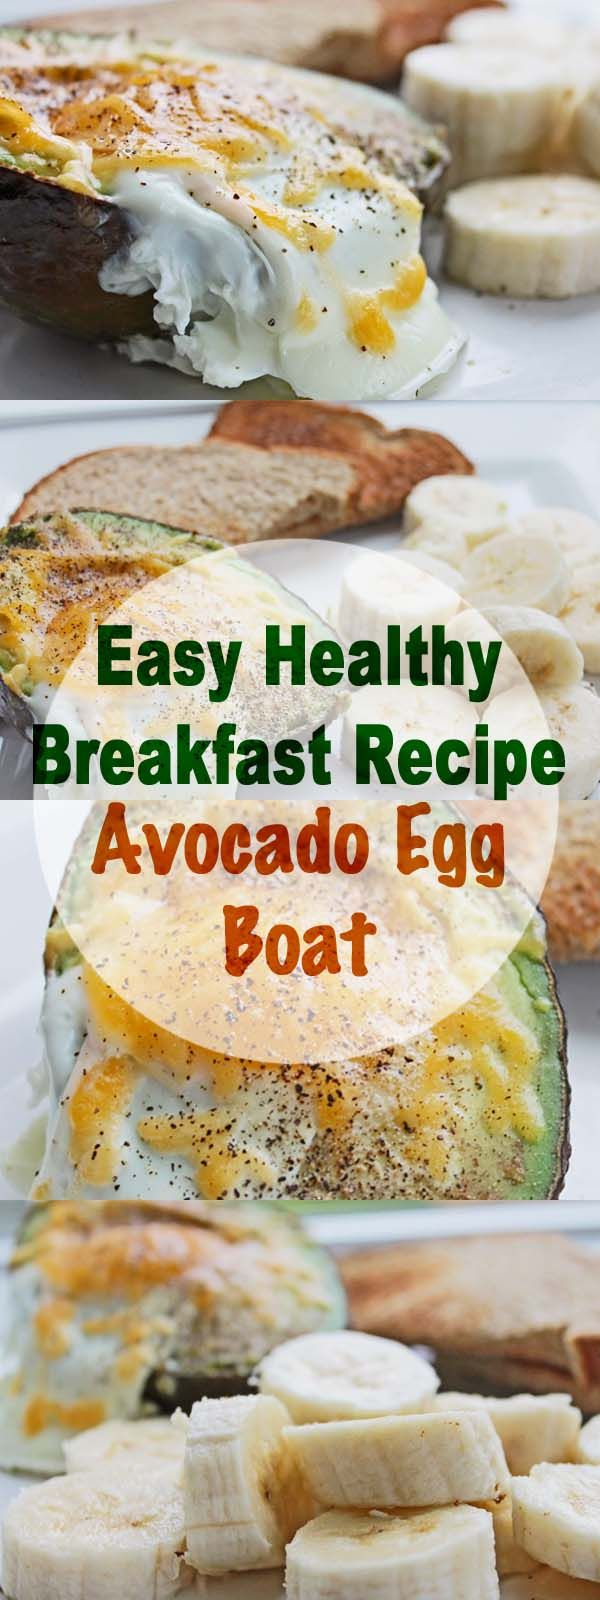 Easy Healthy Breakfast Recipe: Avocado Egg Boat